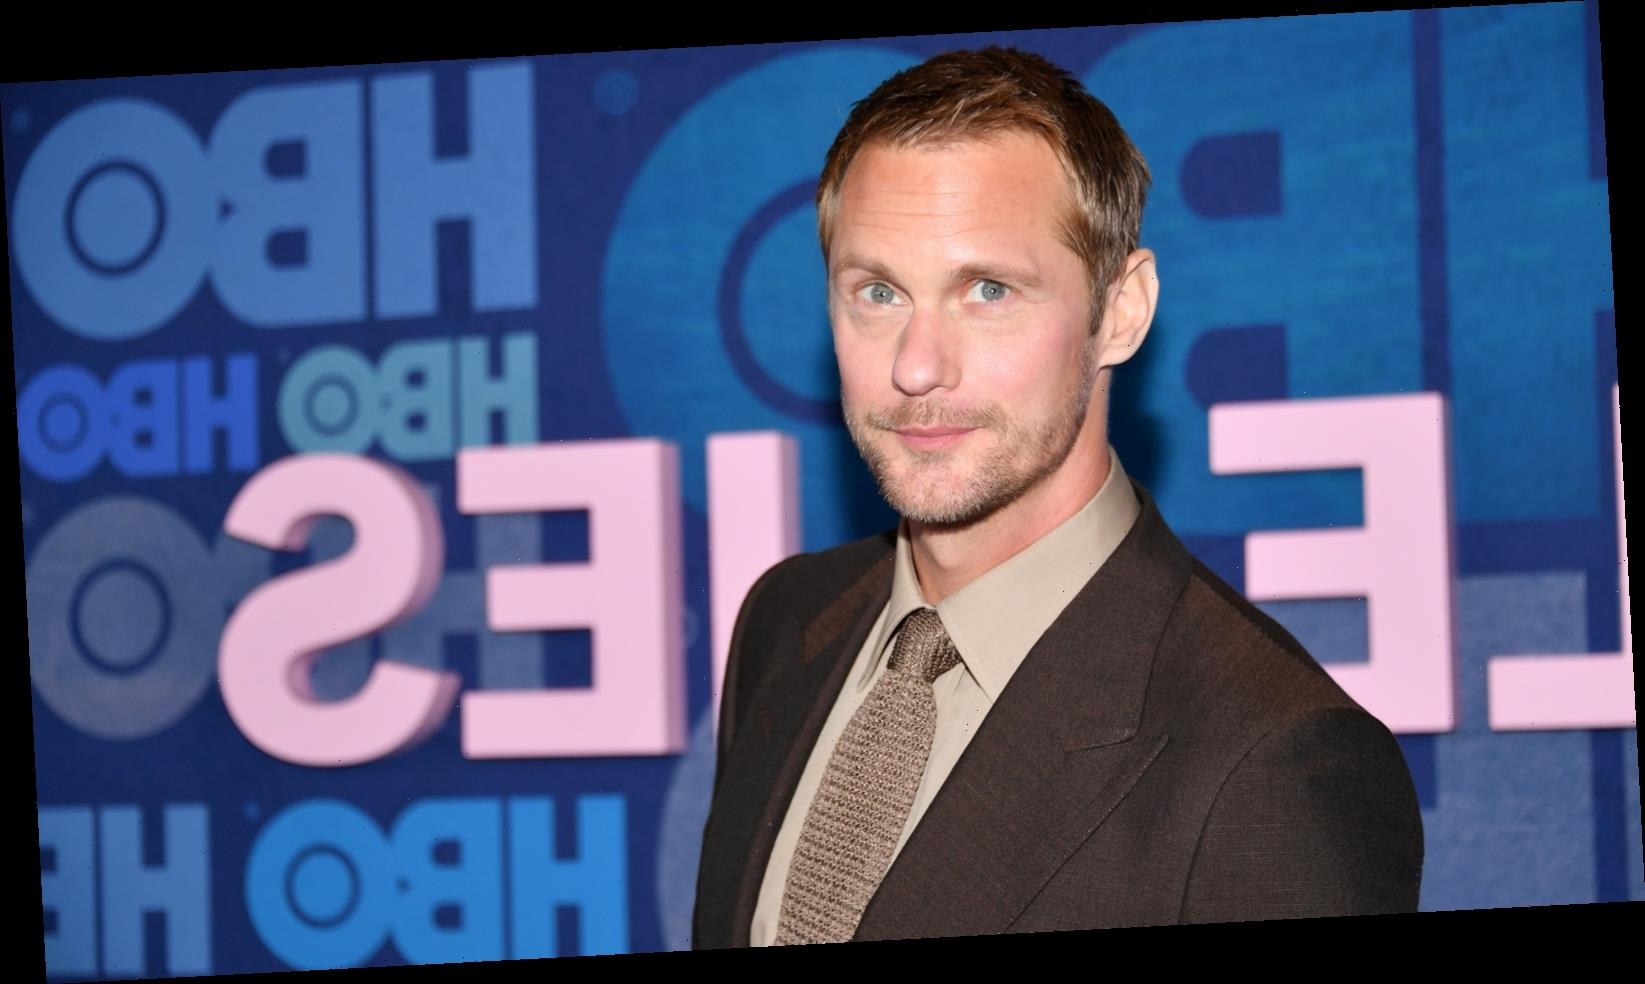 The Famous Family You Didn't Know Alexander Skarsgard Was A Part Of